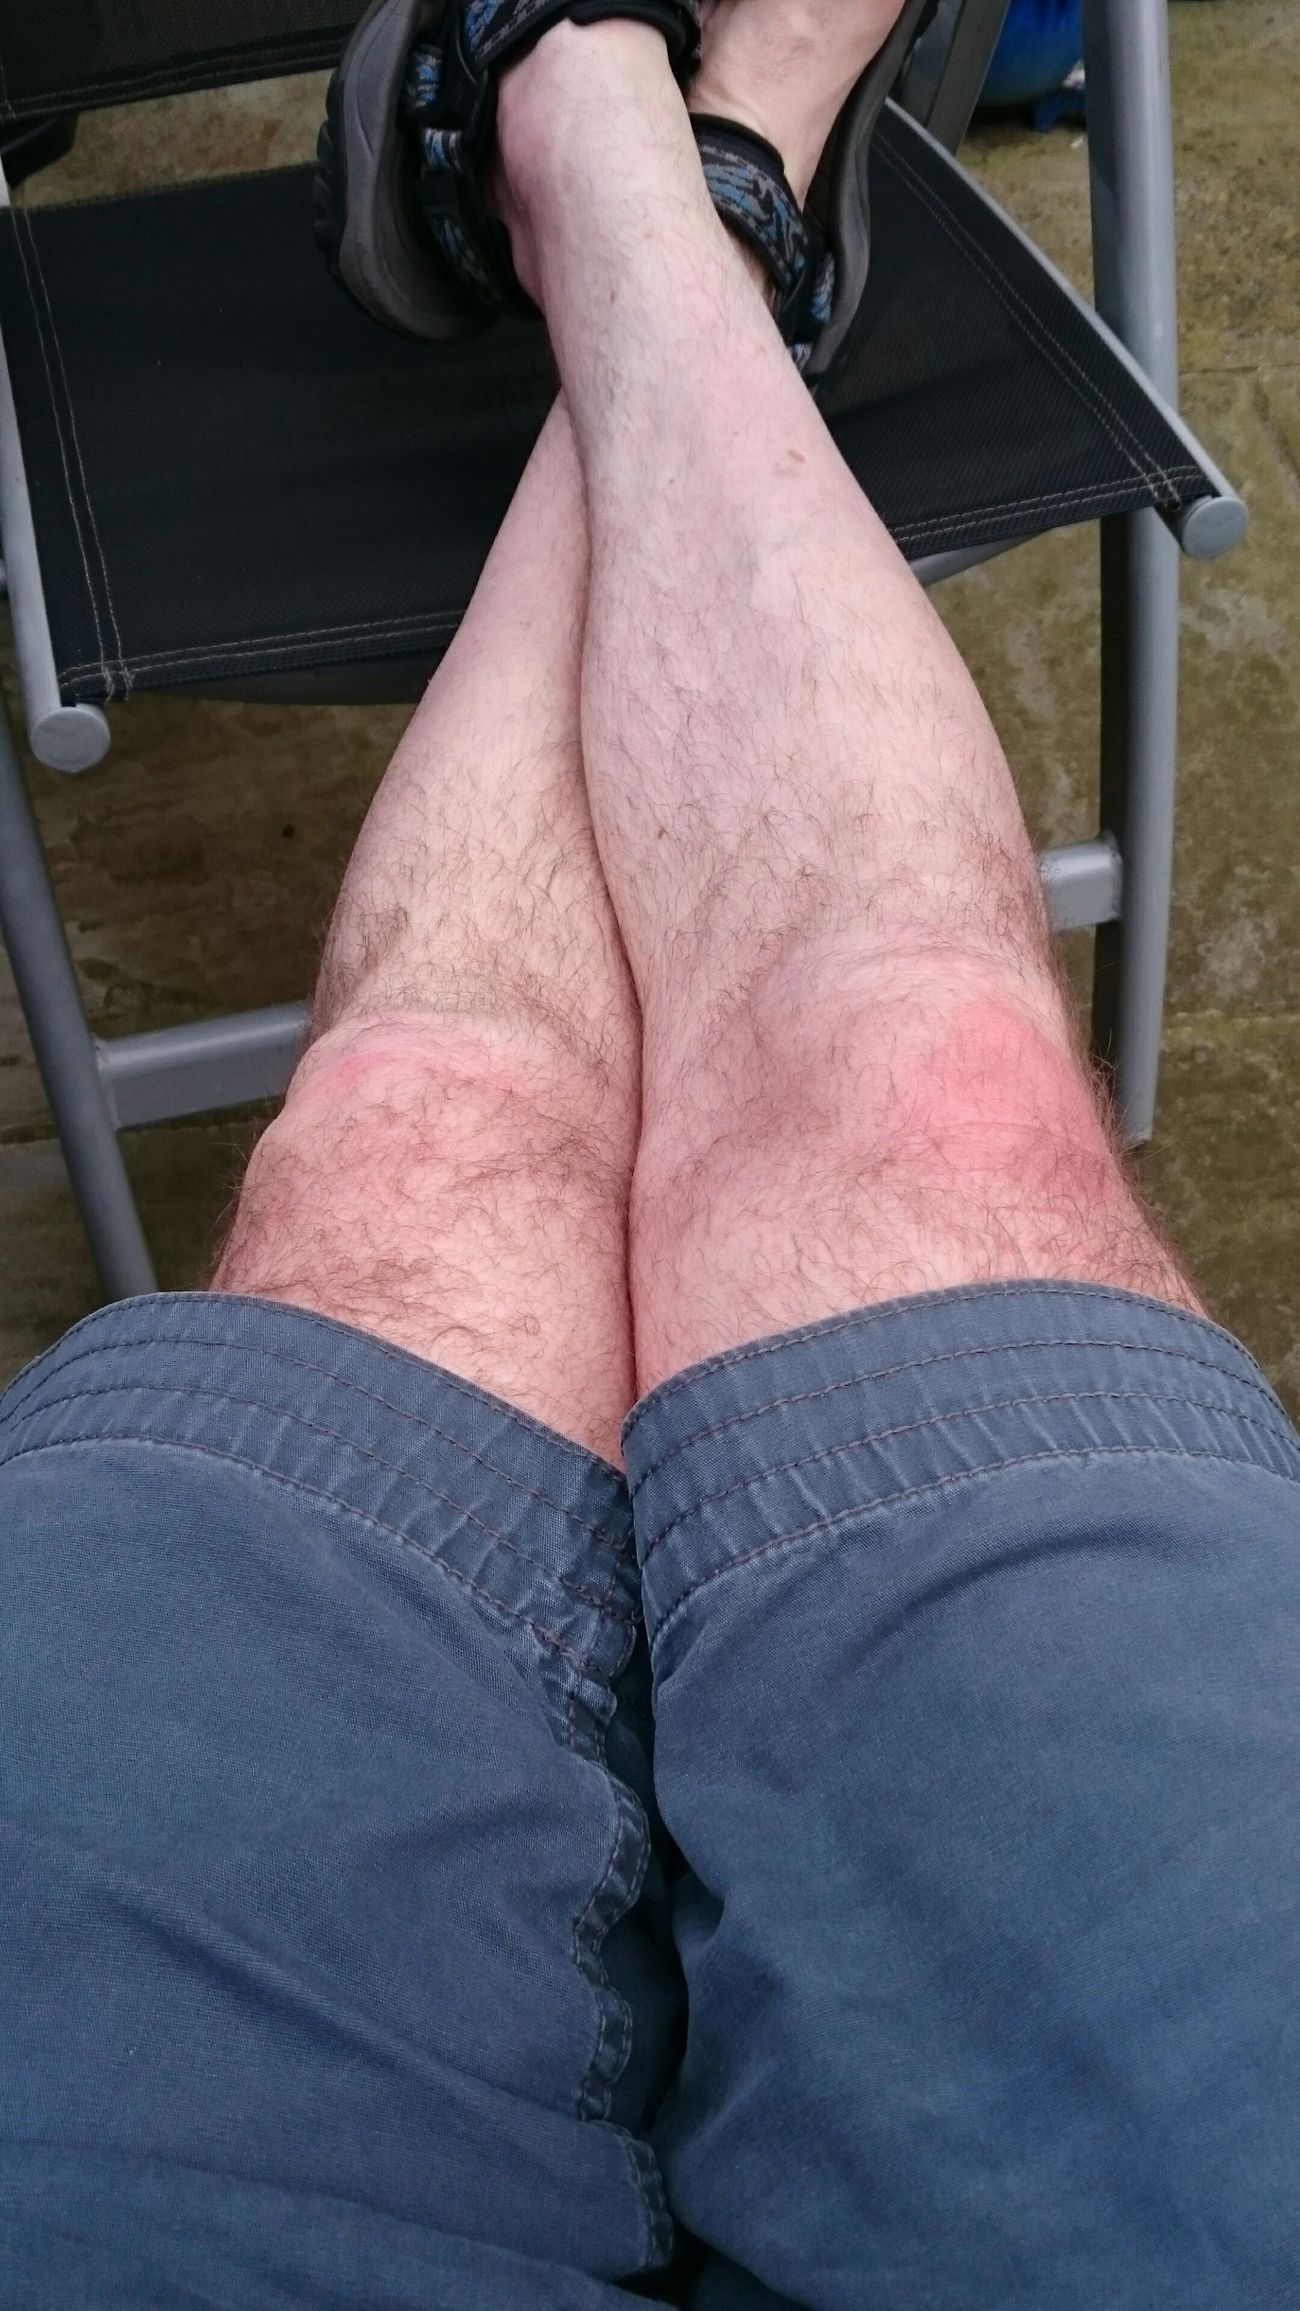 Legs Not So Pretty Selfie